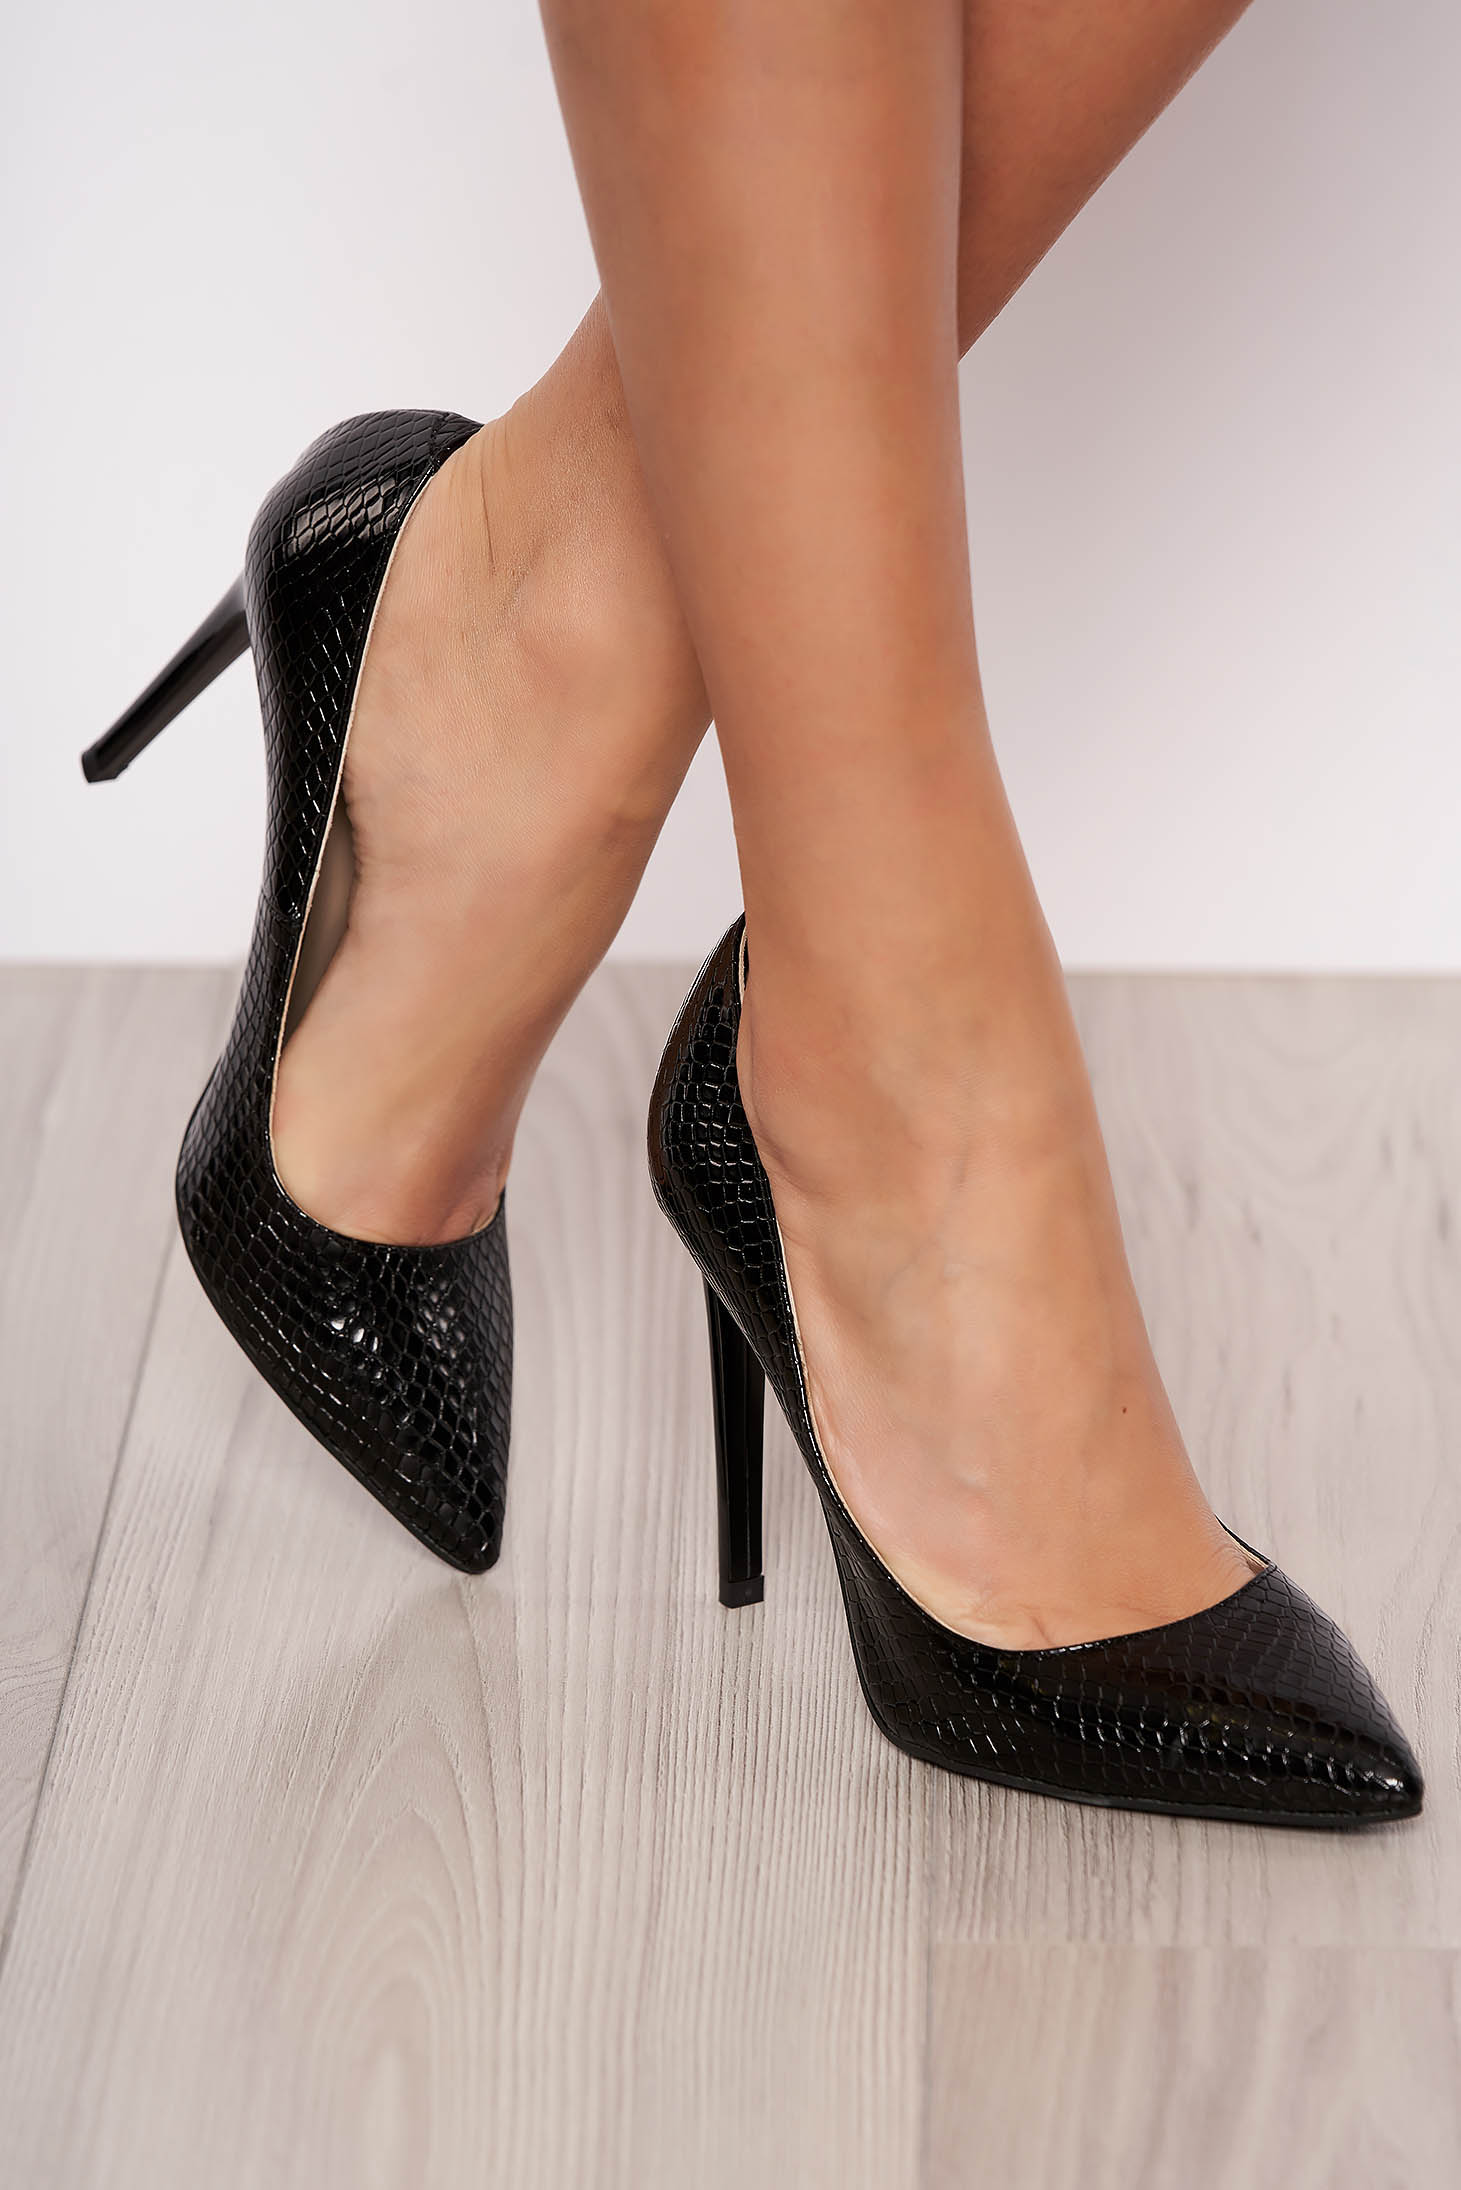 Elegant black stiletto natural leather shoes with high heels